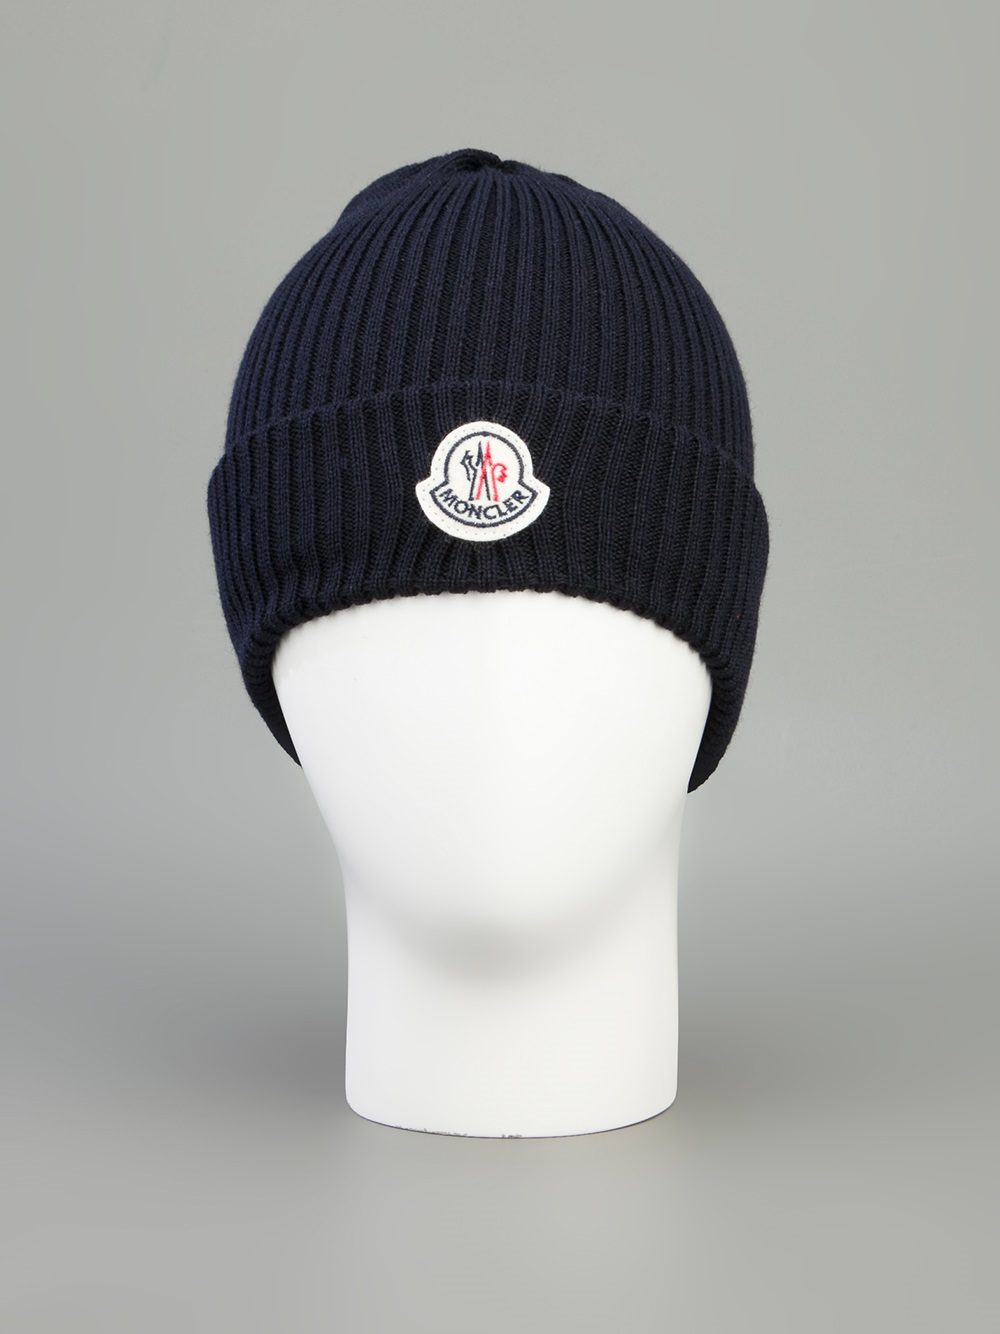 2740e49079d338 Moncler Branded Beanie Hat in Blue for Men - Lyst